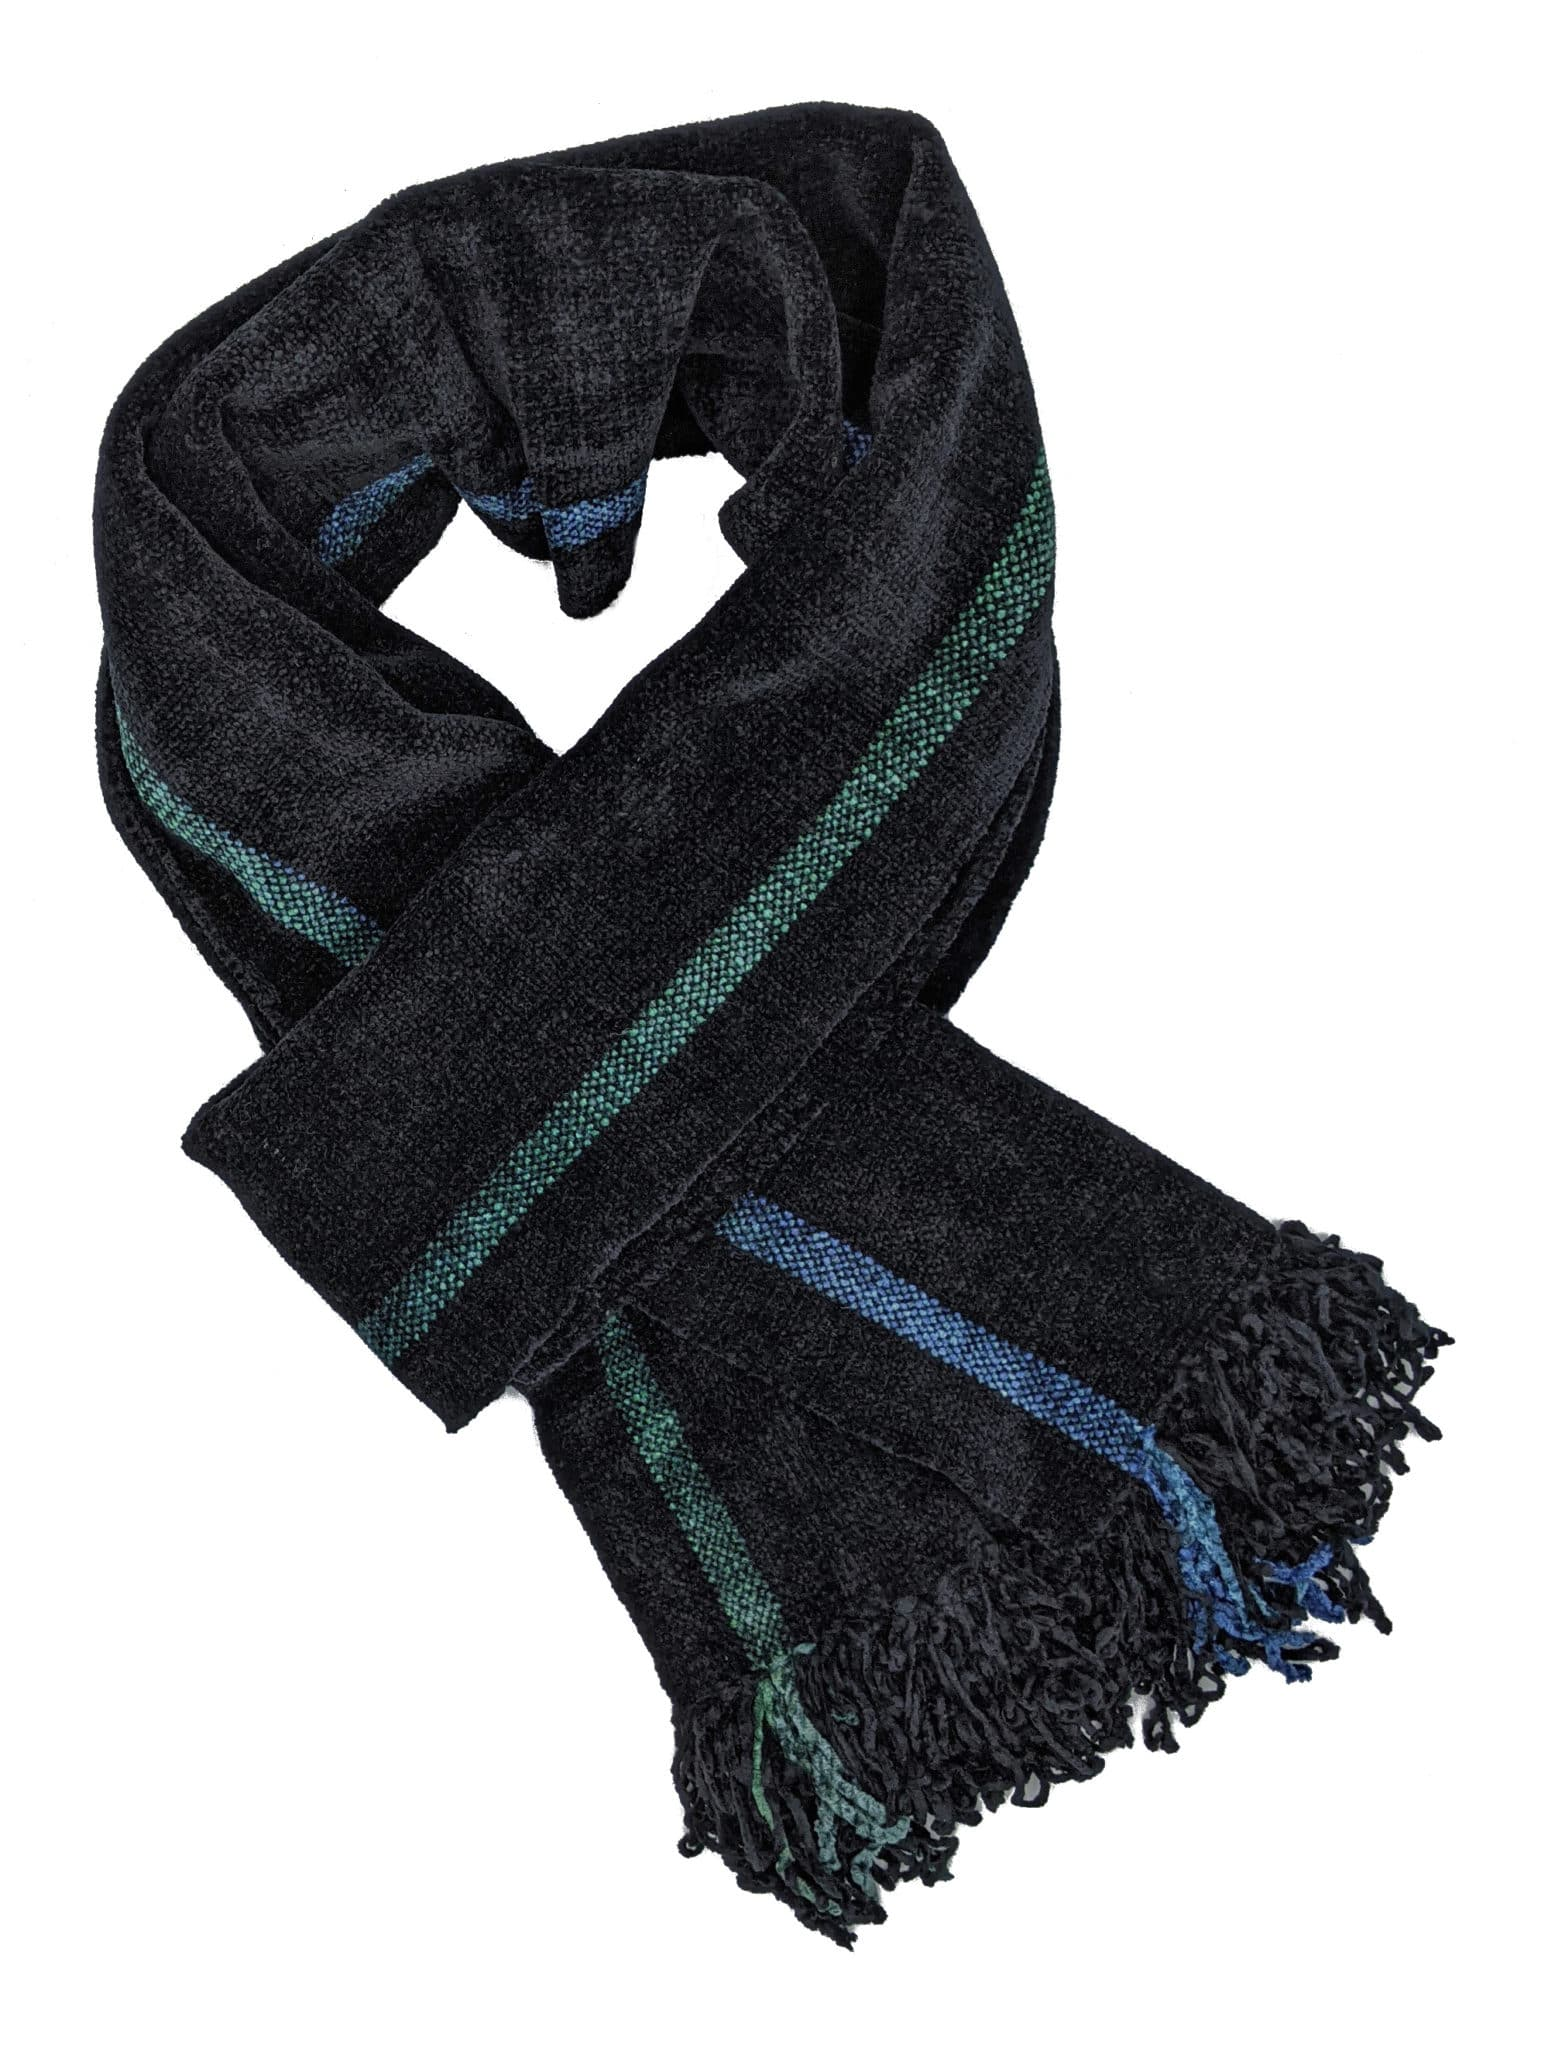 Black with Two Emerald-Sapphire Stripes - Bamboo Chenille Handwoven Scarf 8 x 68